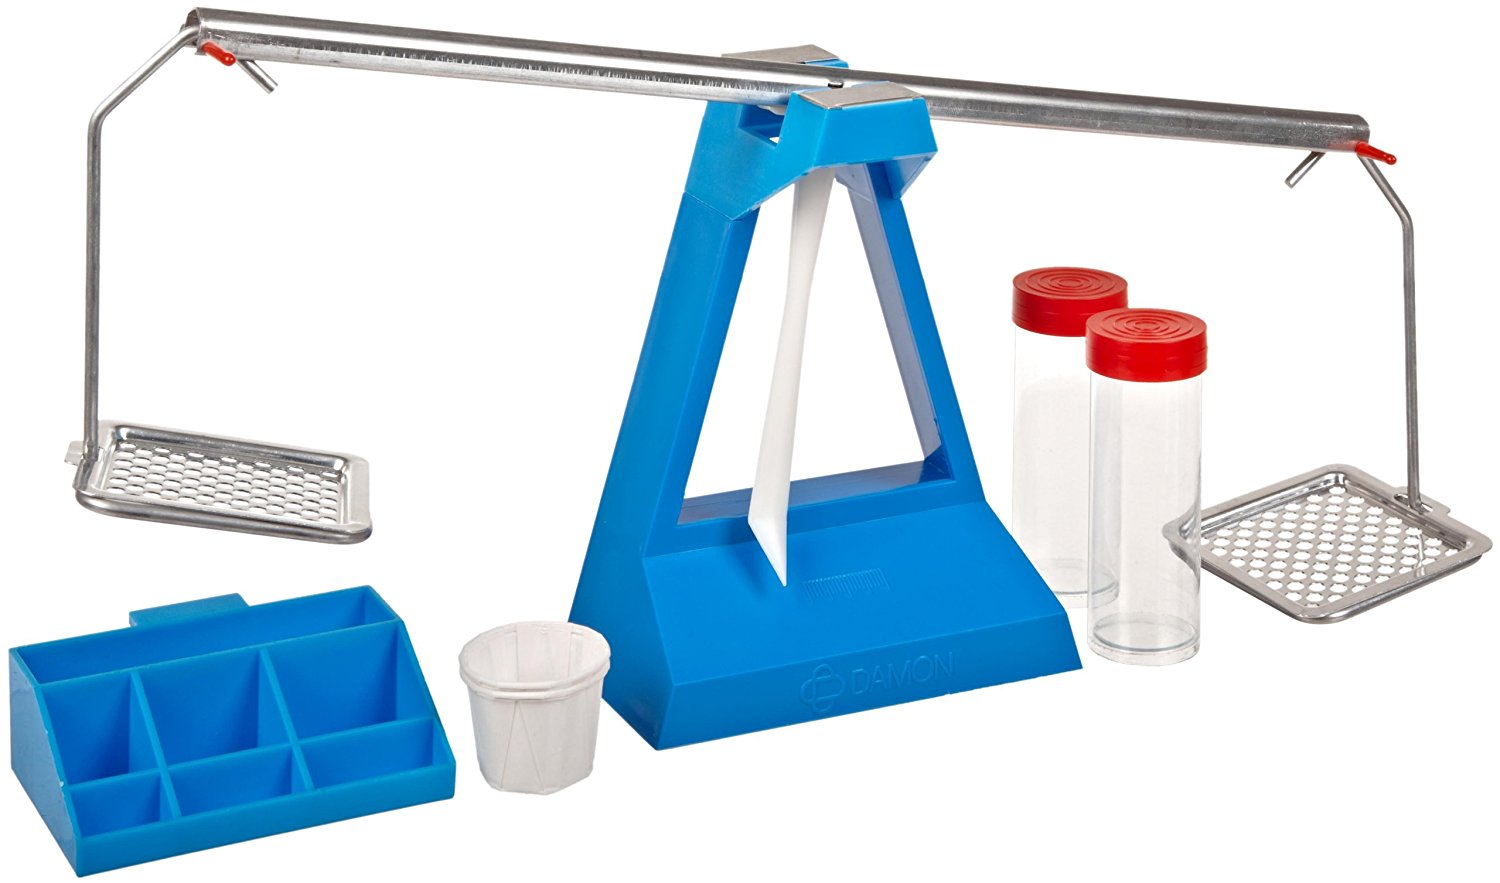 Equal Arm Beam Balance Kit - Ward's 355400